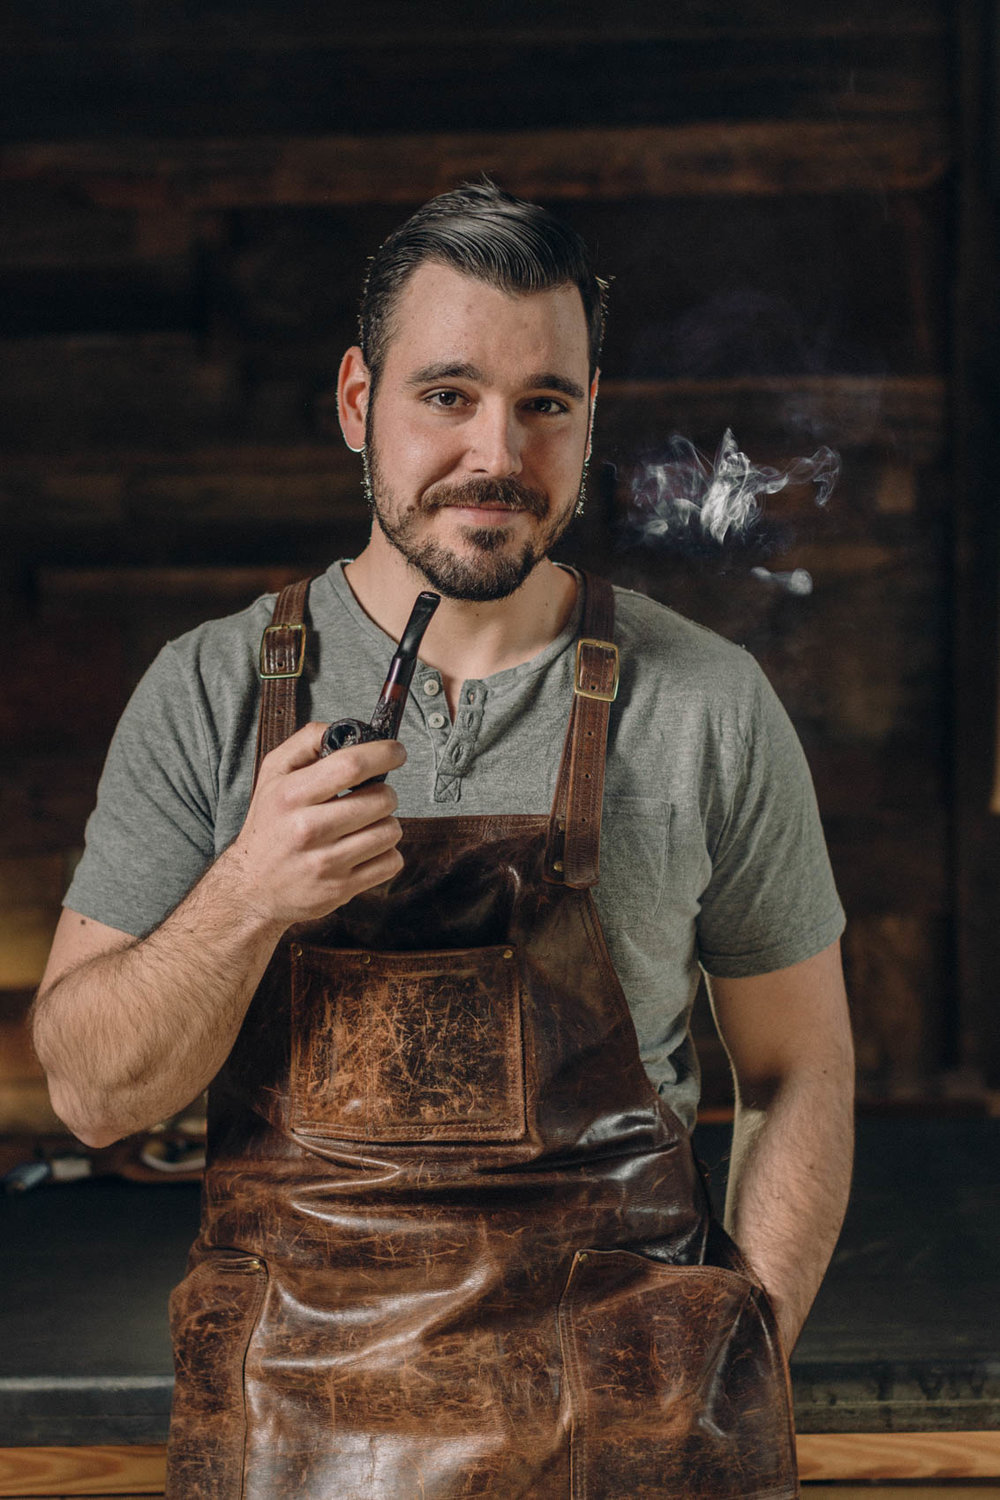 Artisan woodworker portrait with pipe smoking